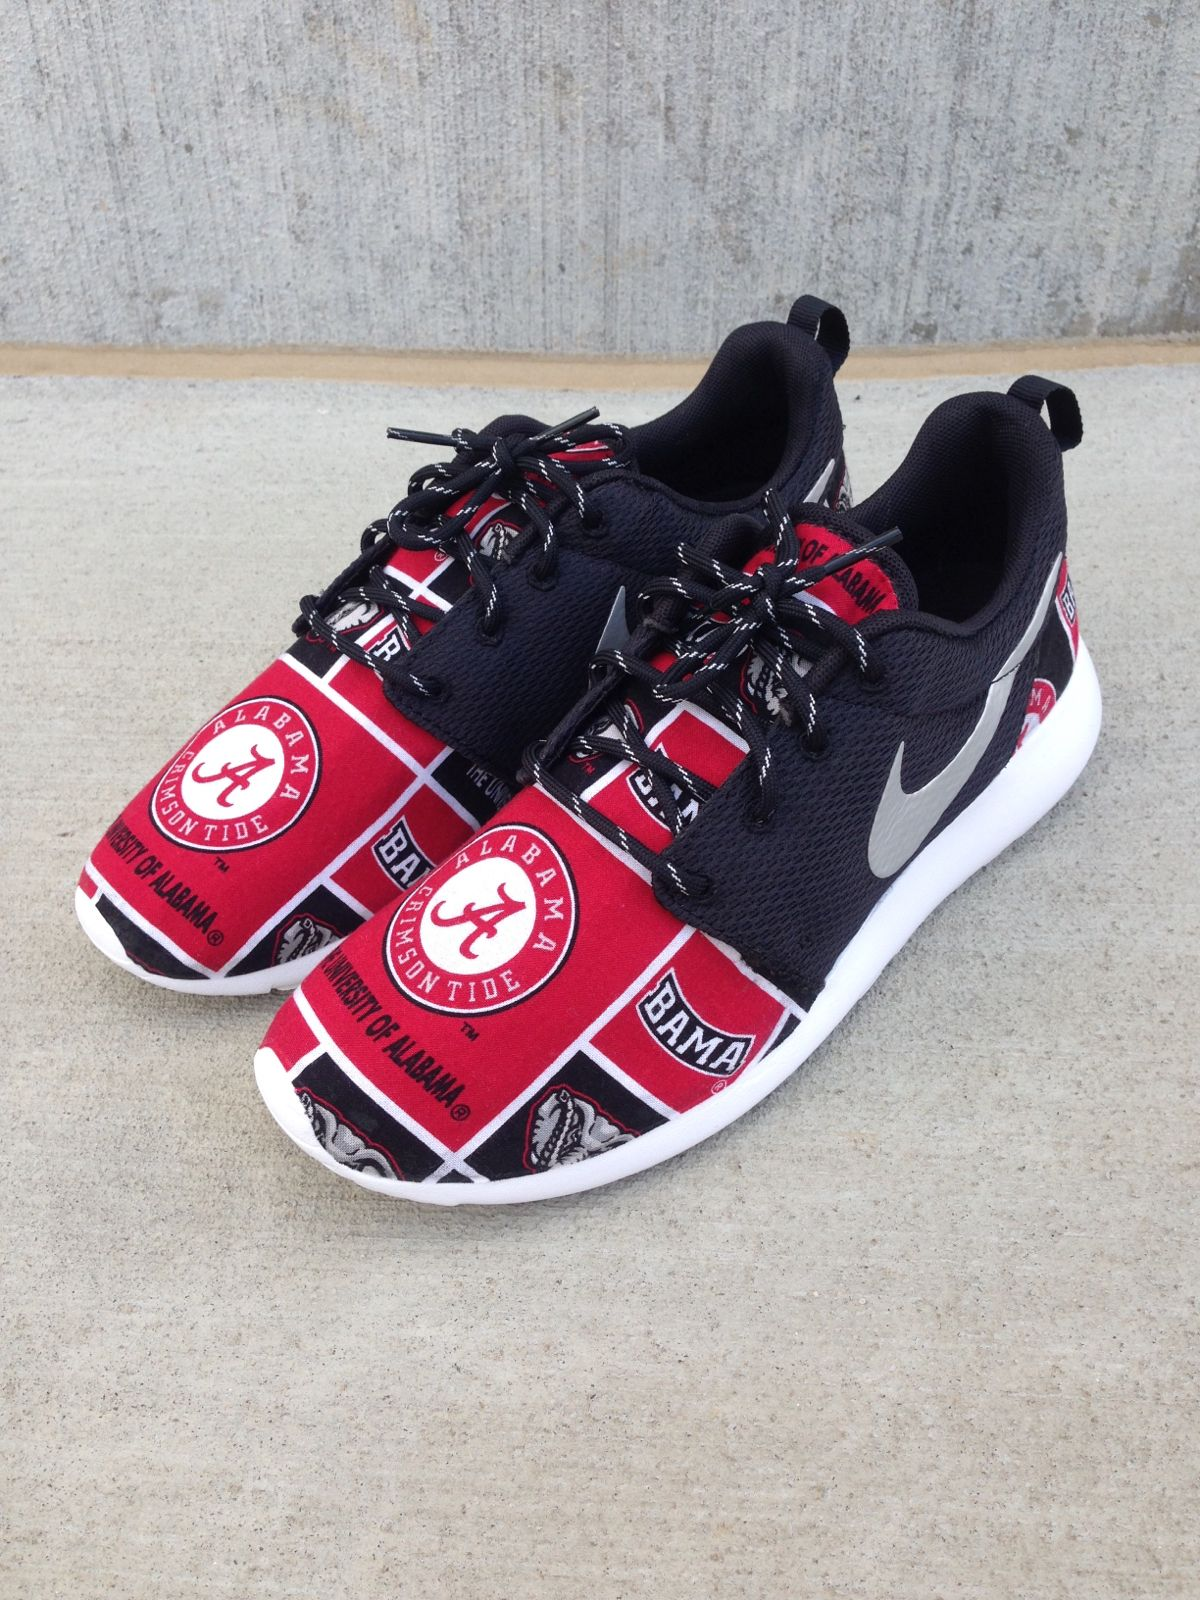 c8435cf9c9c1 Custom Nike Roshe One